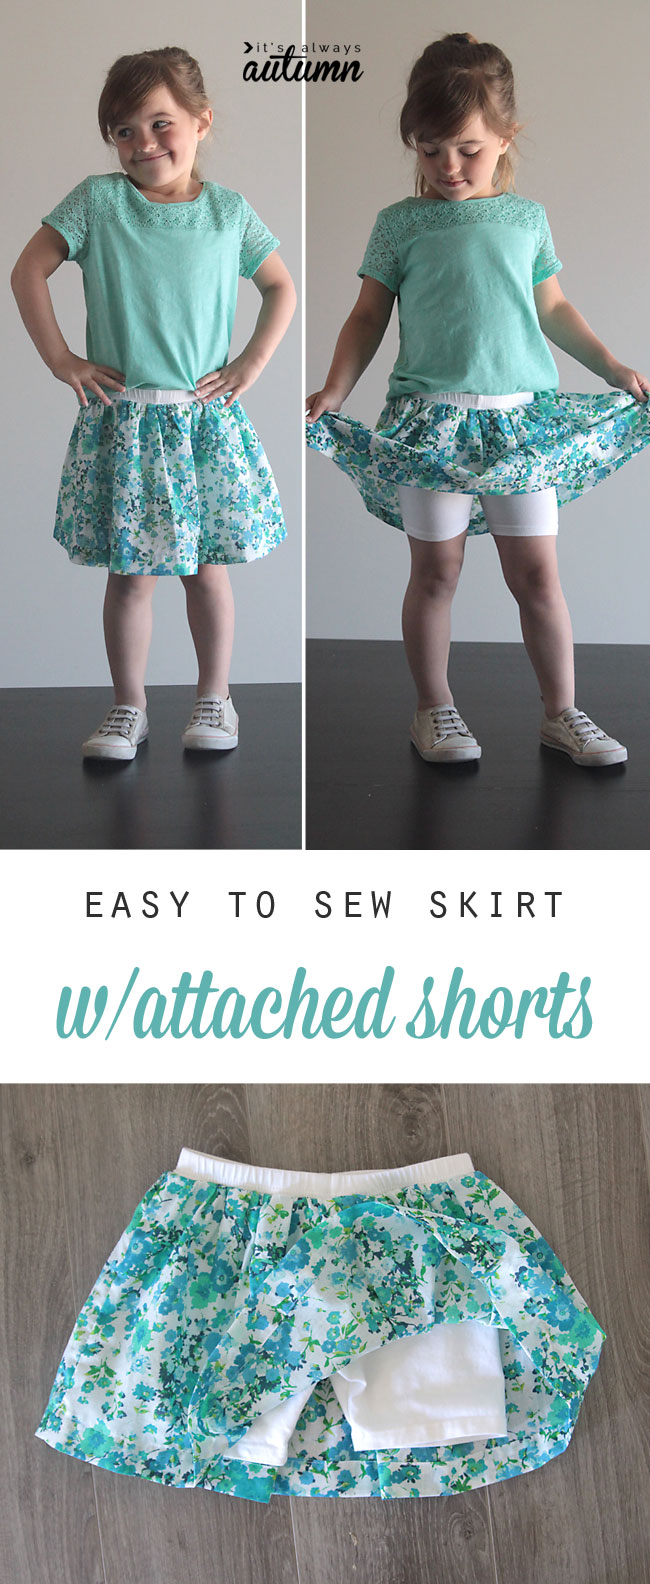 easy to sew skirt with attached shorts from It's Always Autumn